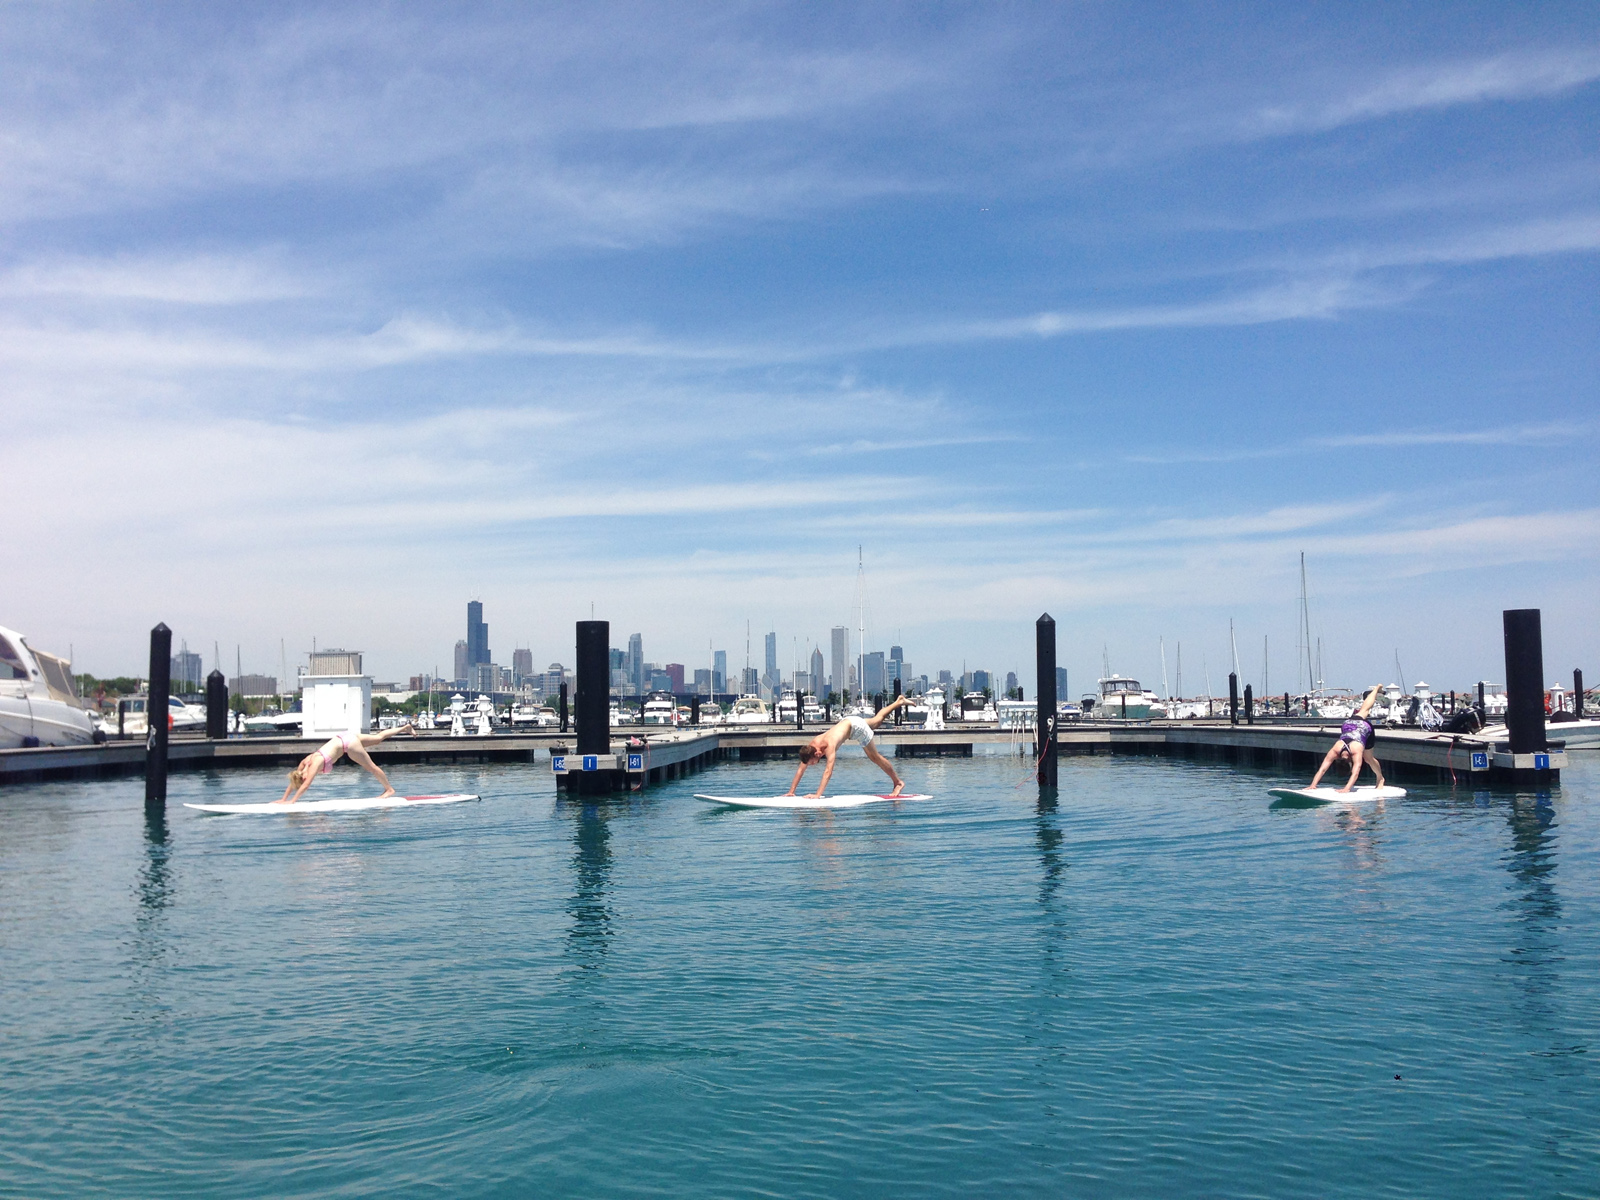 SUP Yoga in Chicago at 31st St Harbor